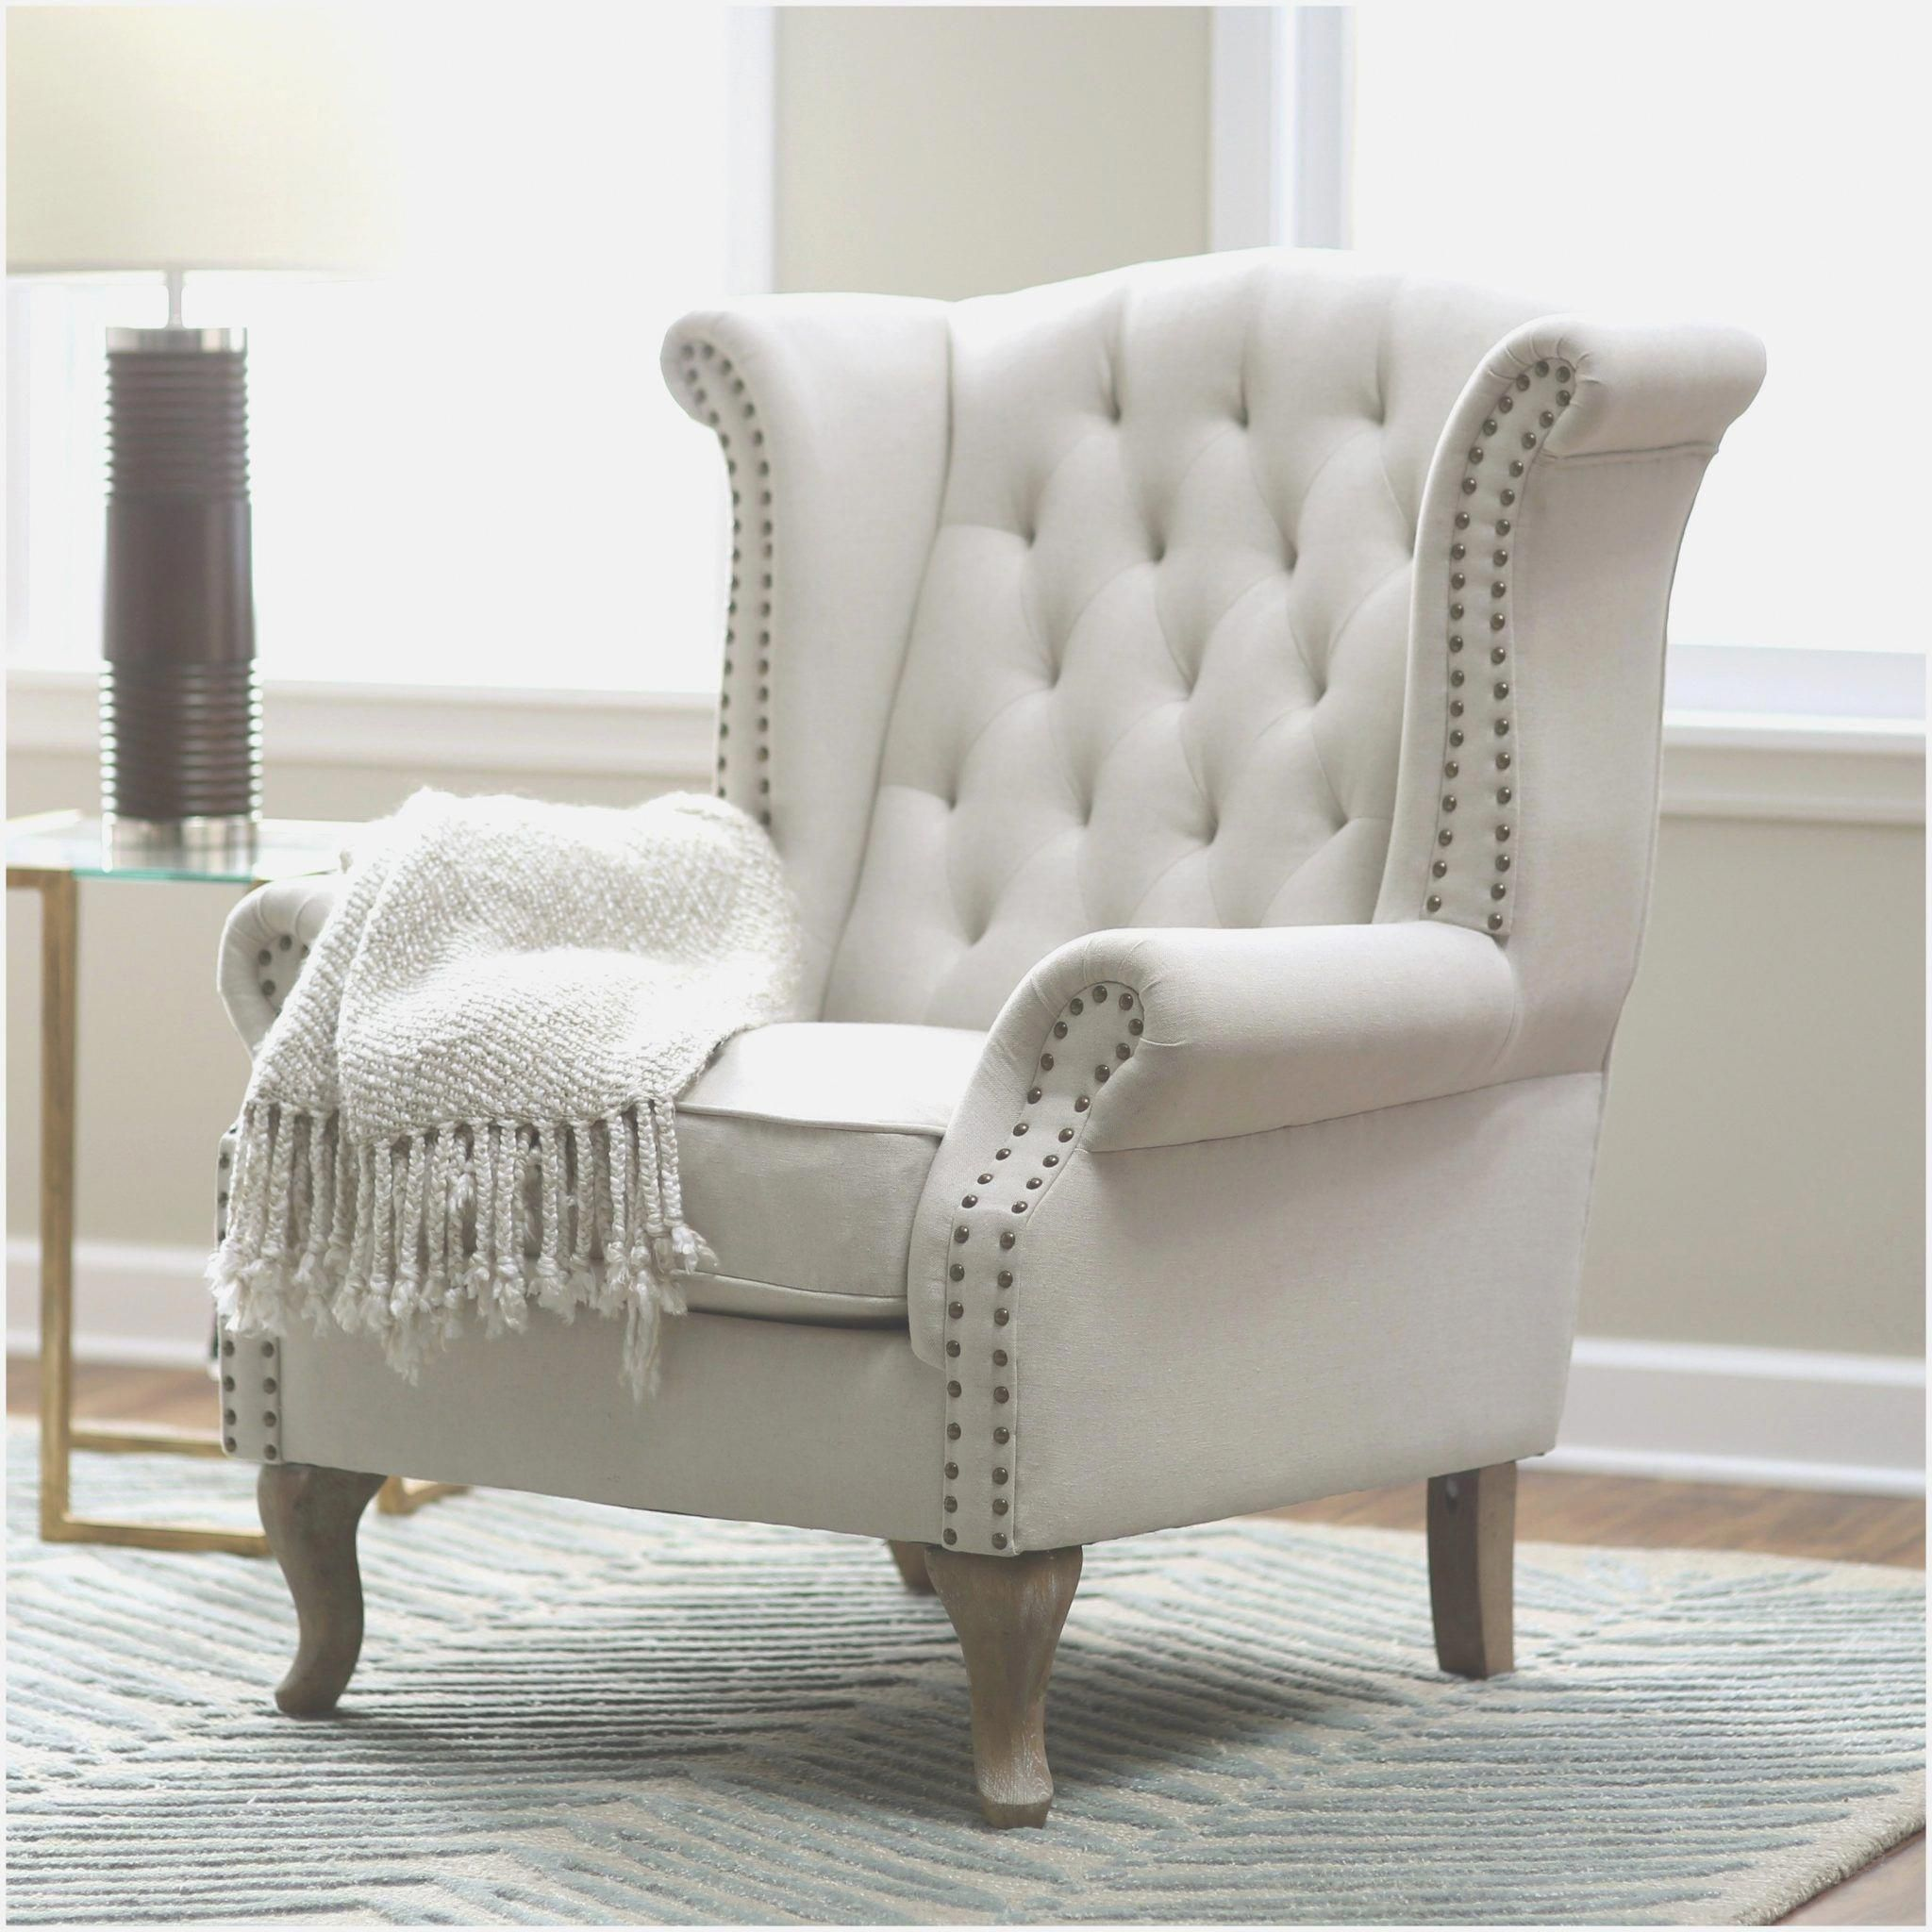 accent chairs with arms clearance white crushed velvet chair covers 99 cent store cheap